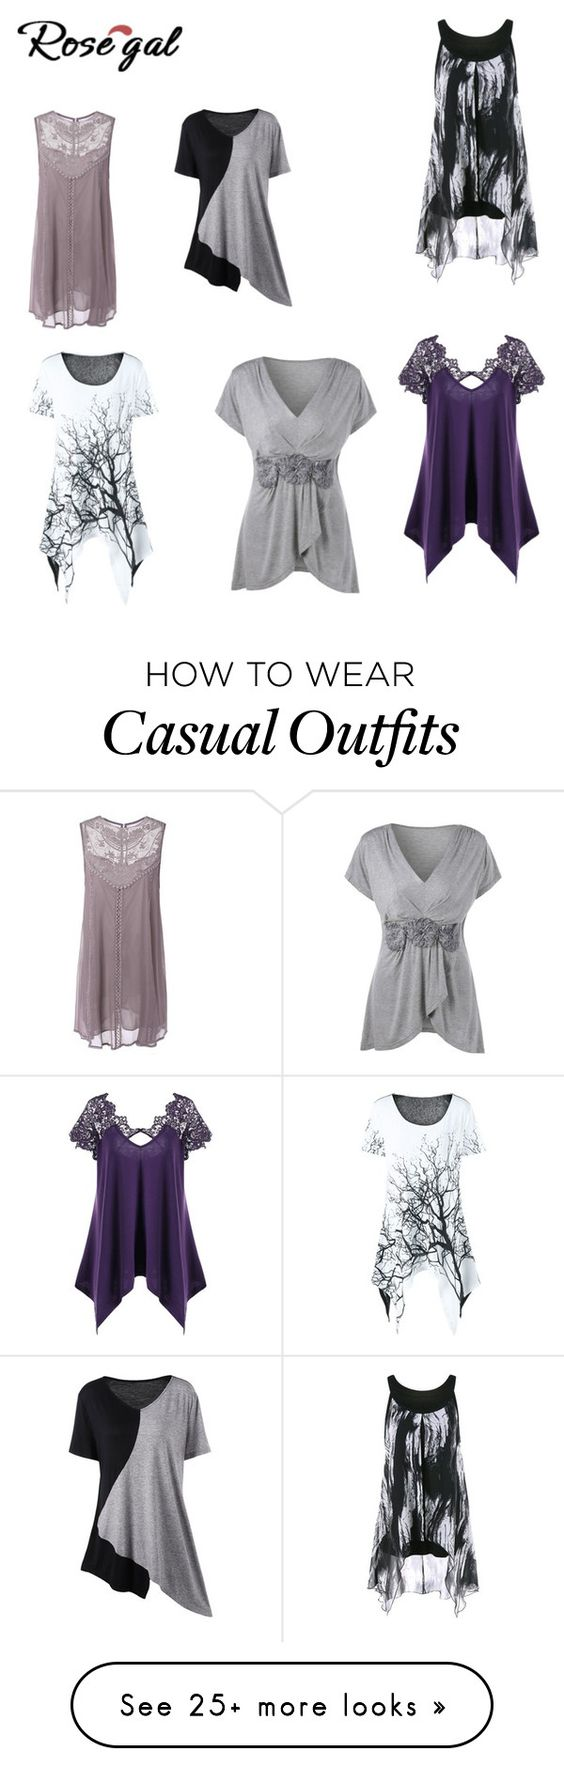 """Casual assymetric"" by audjvoss on Polyvore"